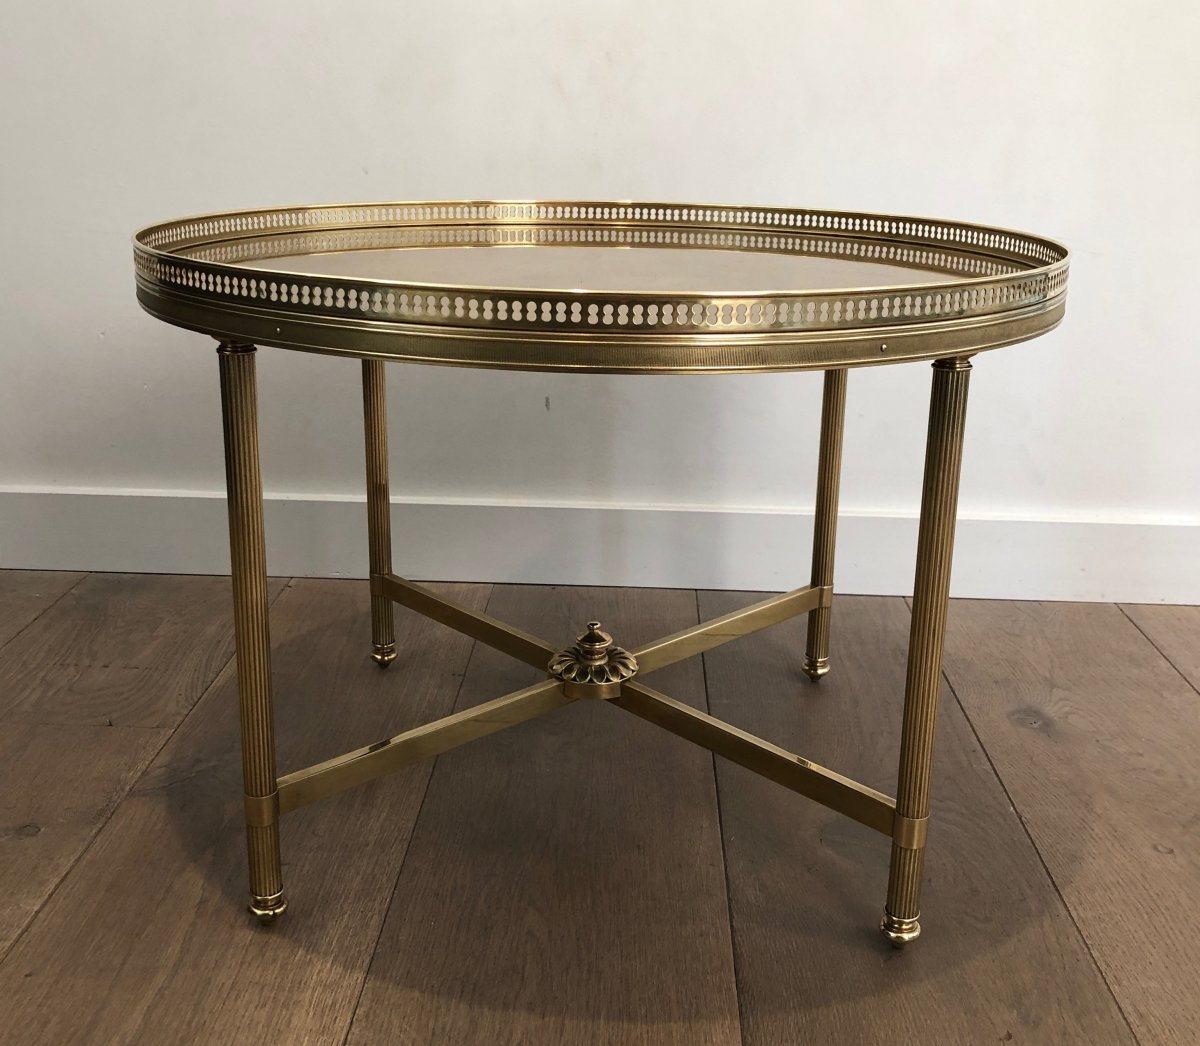 Maison Jansen. Neoclassical Style Small Round Brass Coffee Table With Gold Top. French. 1940's-photo-8